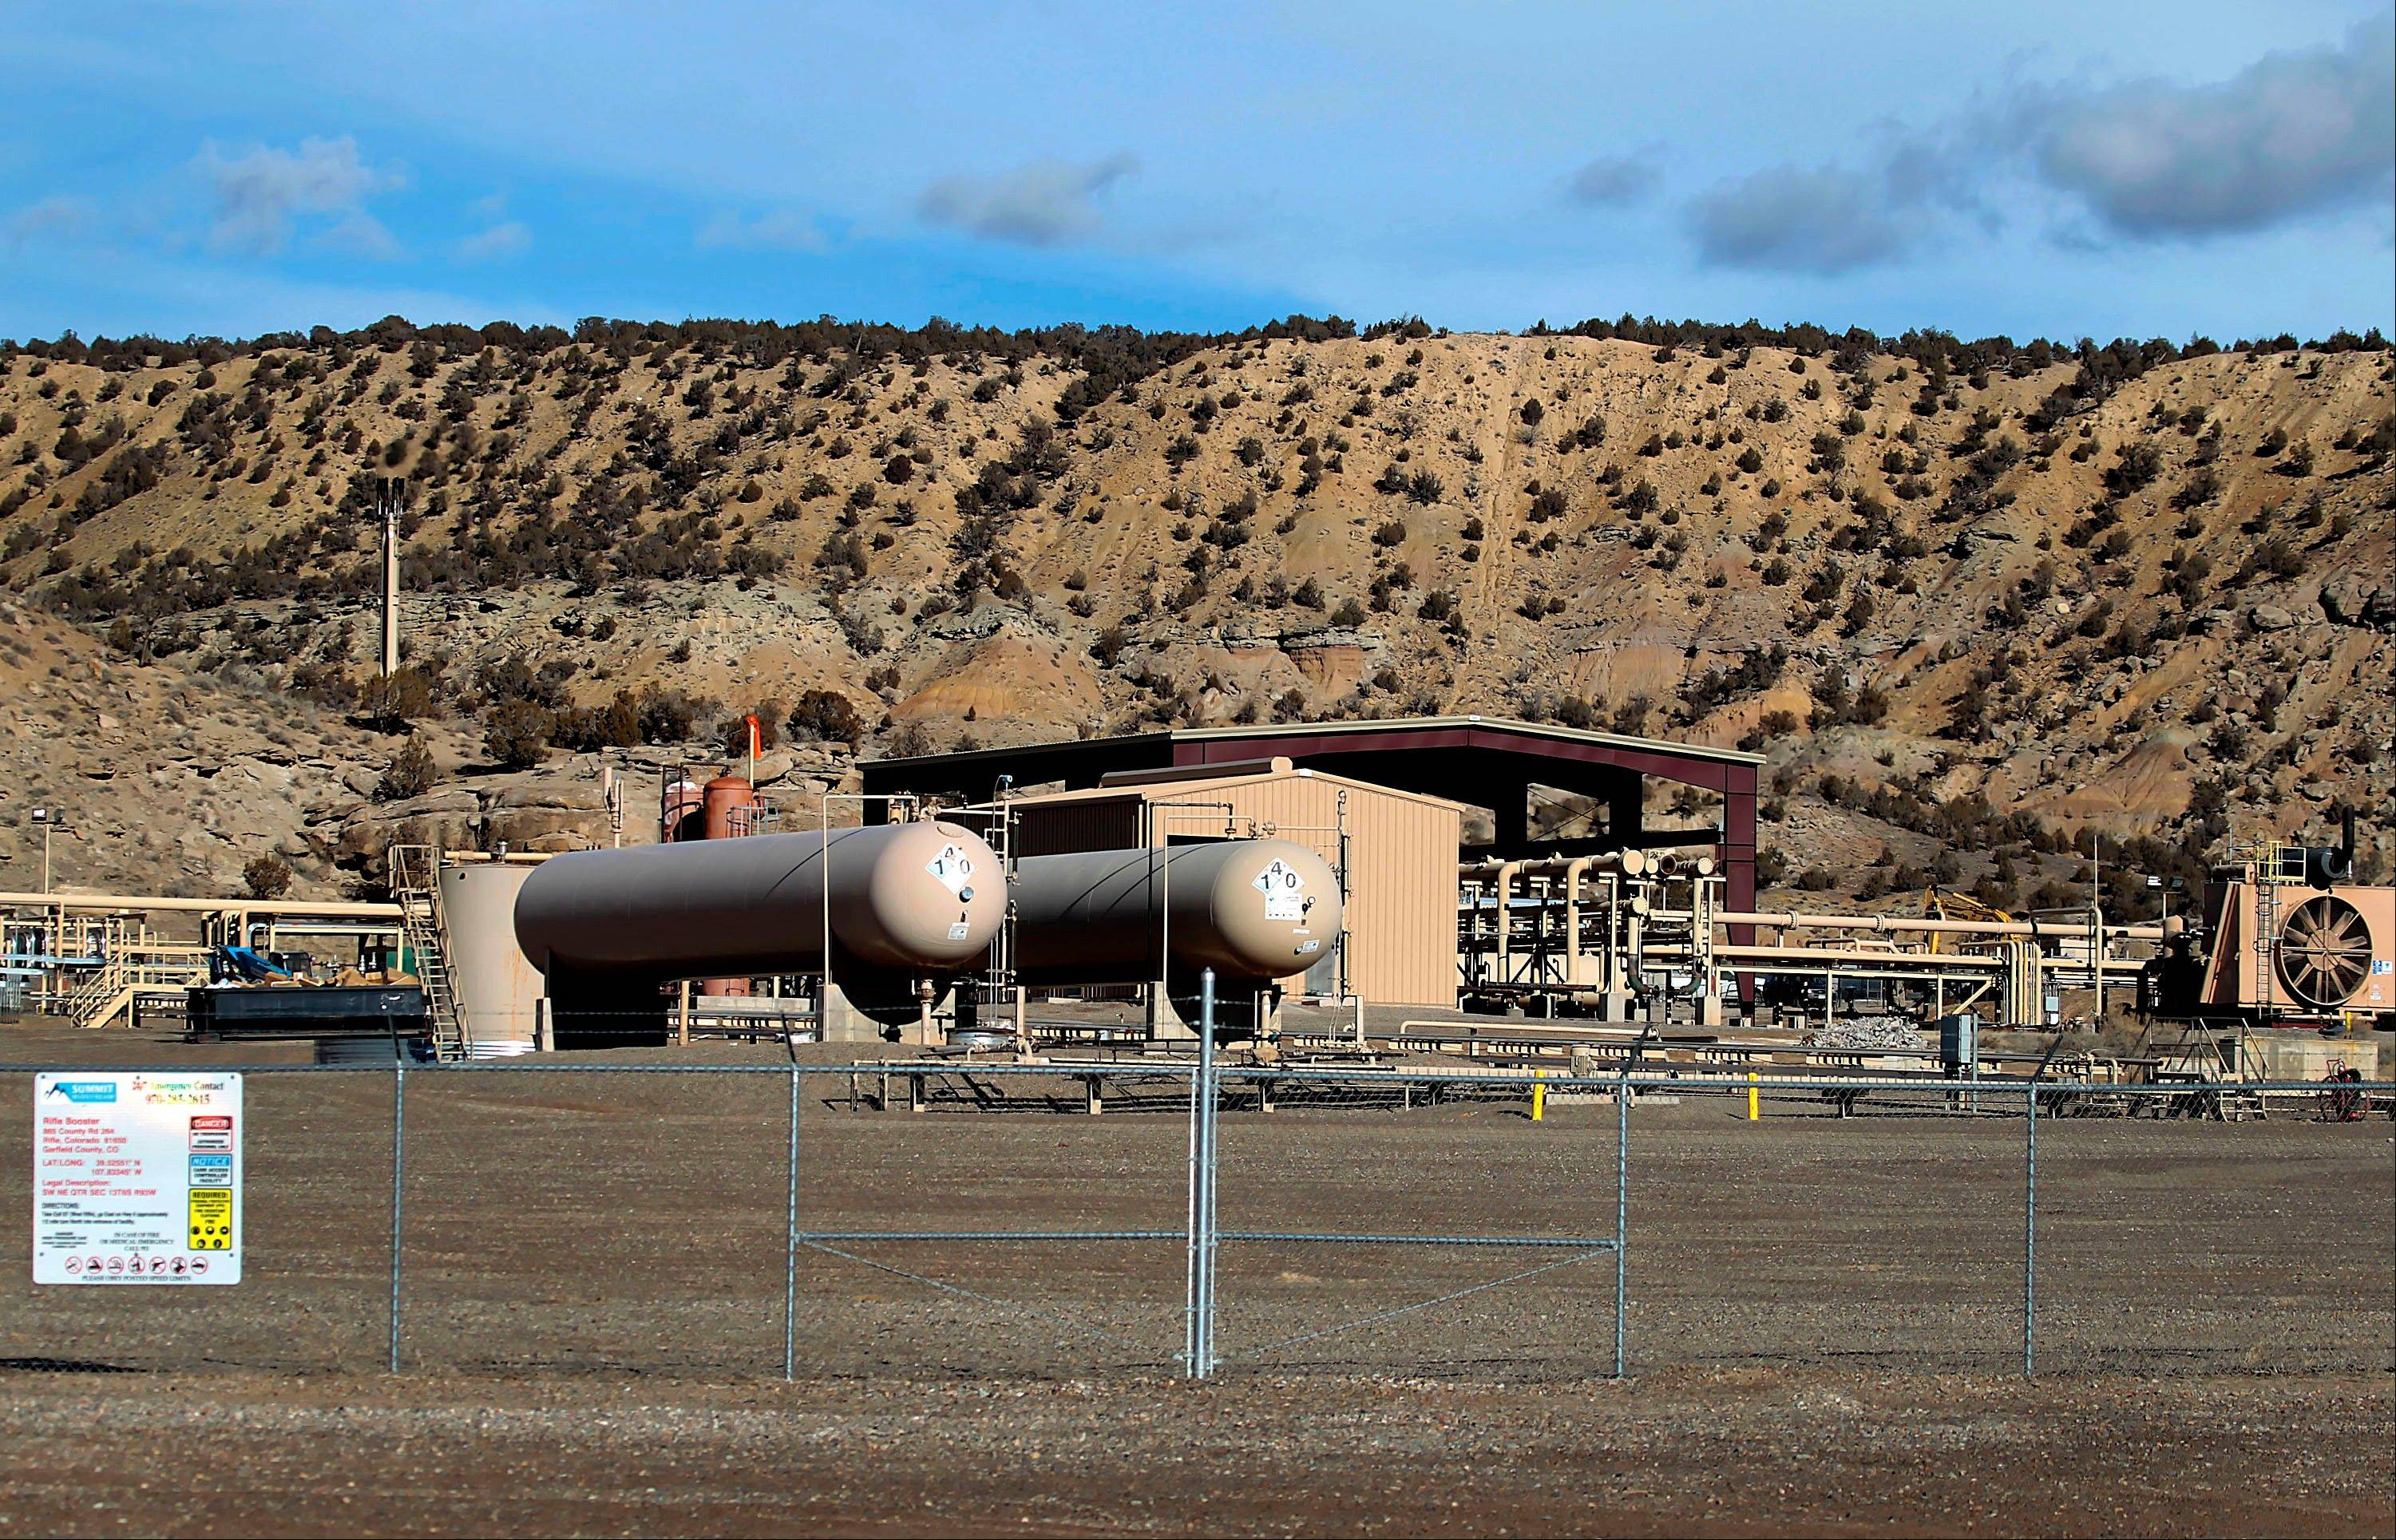 bloomberg newsA natural gas conditioning station stands in a field west of Rifle, Colo. Natural gas futures declined in New York before a weekly government report that may show a seasonal stockpile decline.